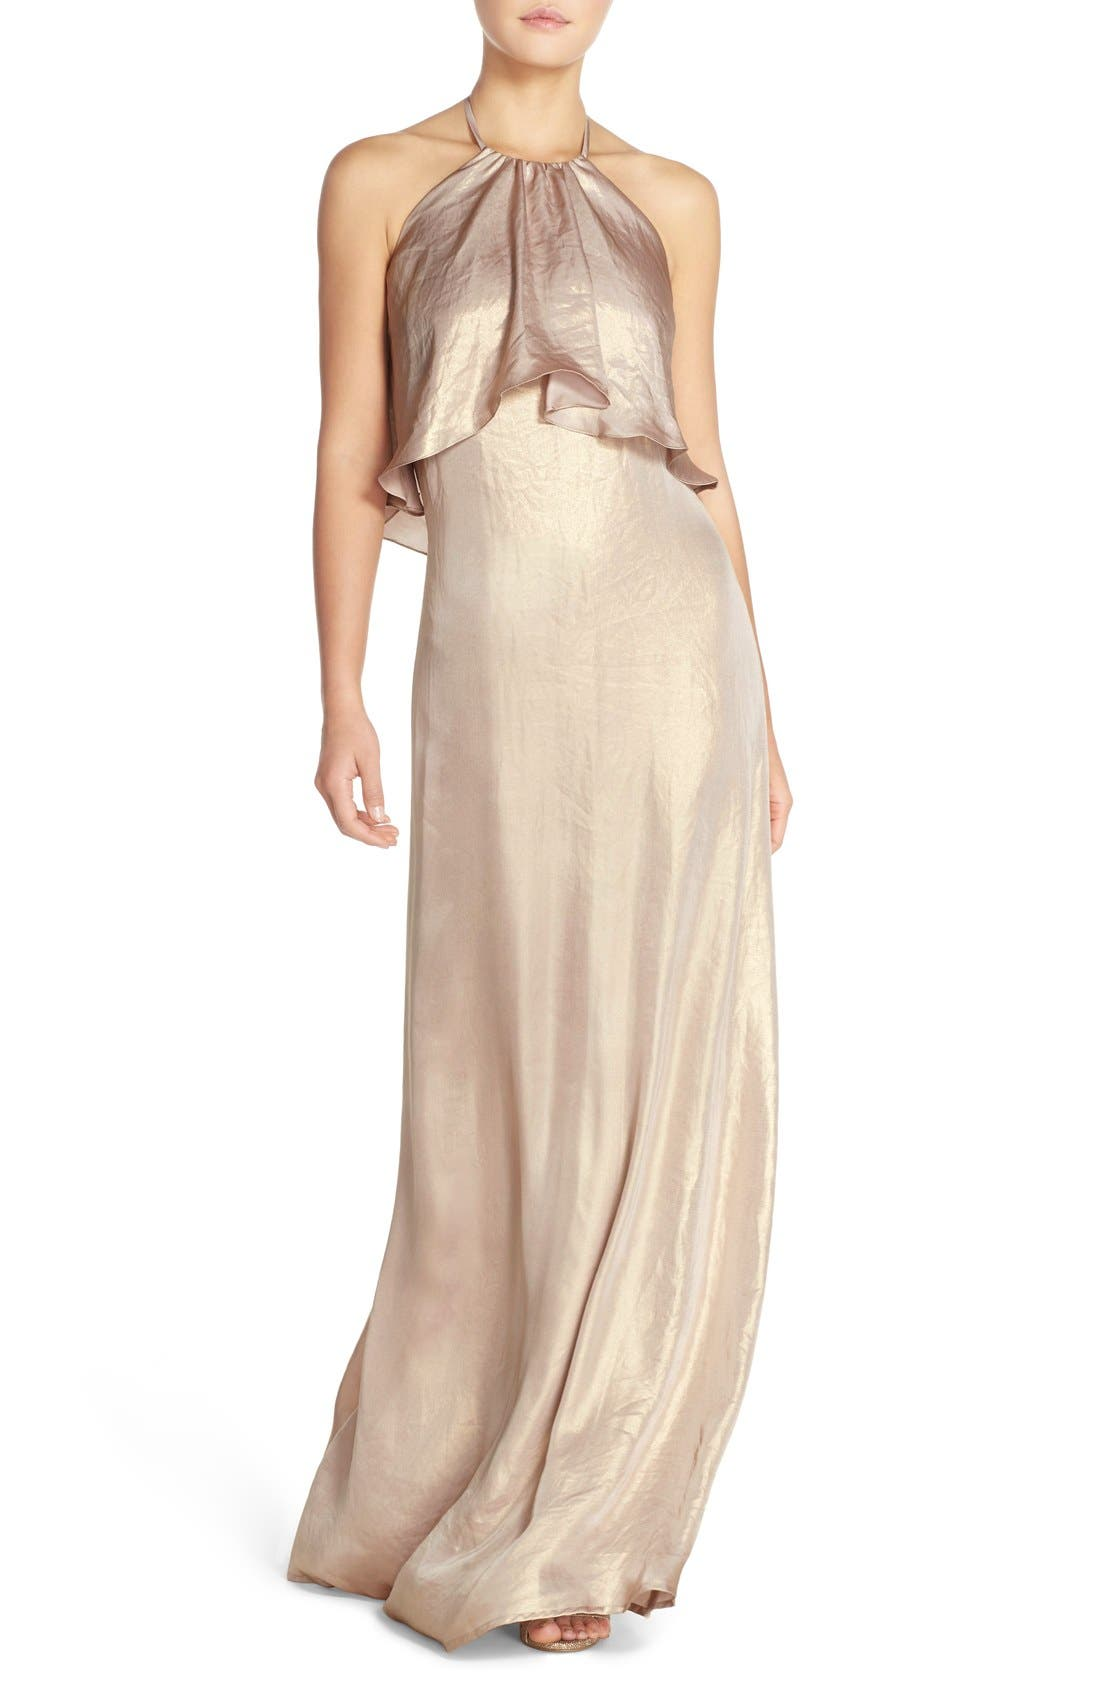 Alternate Image 1 Selected - nouvelle AMSALE 'Lilith' Ruffle Bib Liquid Chiffon Halter Gown